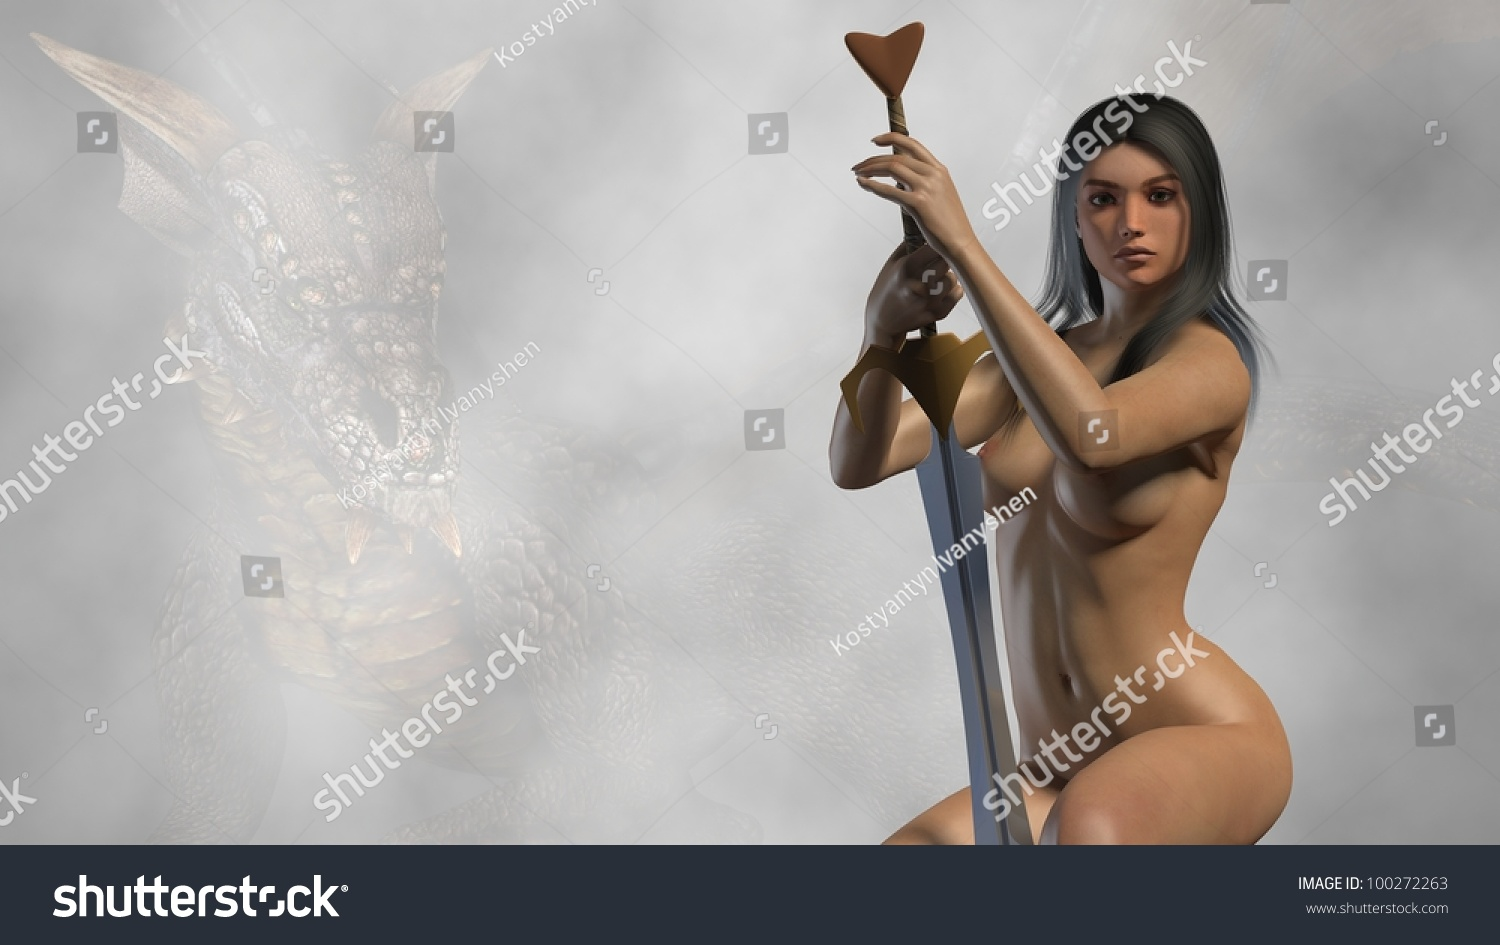 Nude male warrior fantasy photos softcore pussy